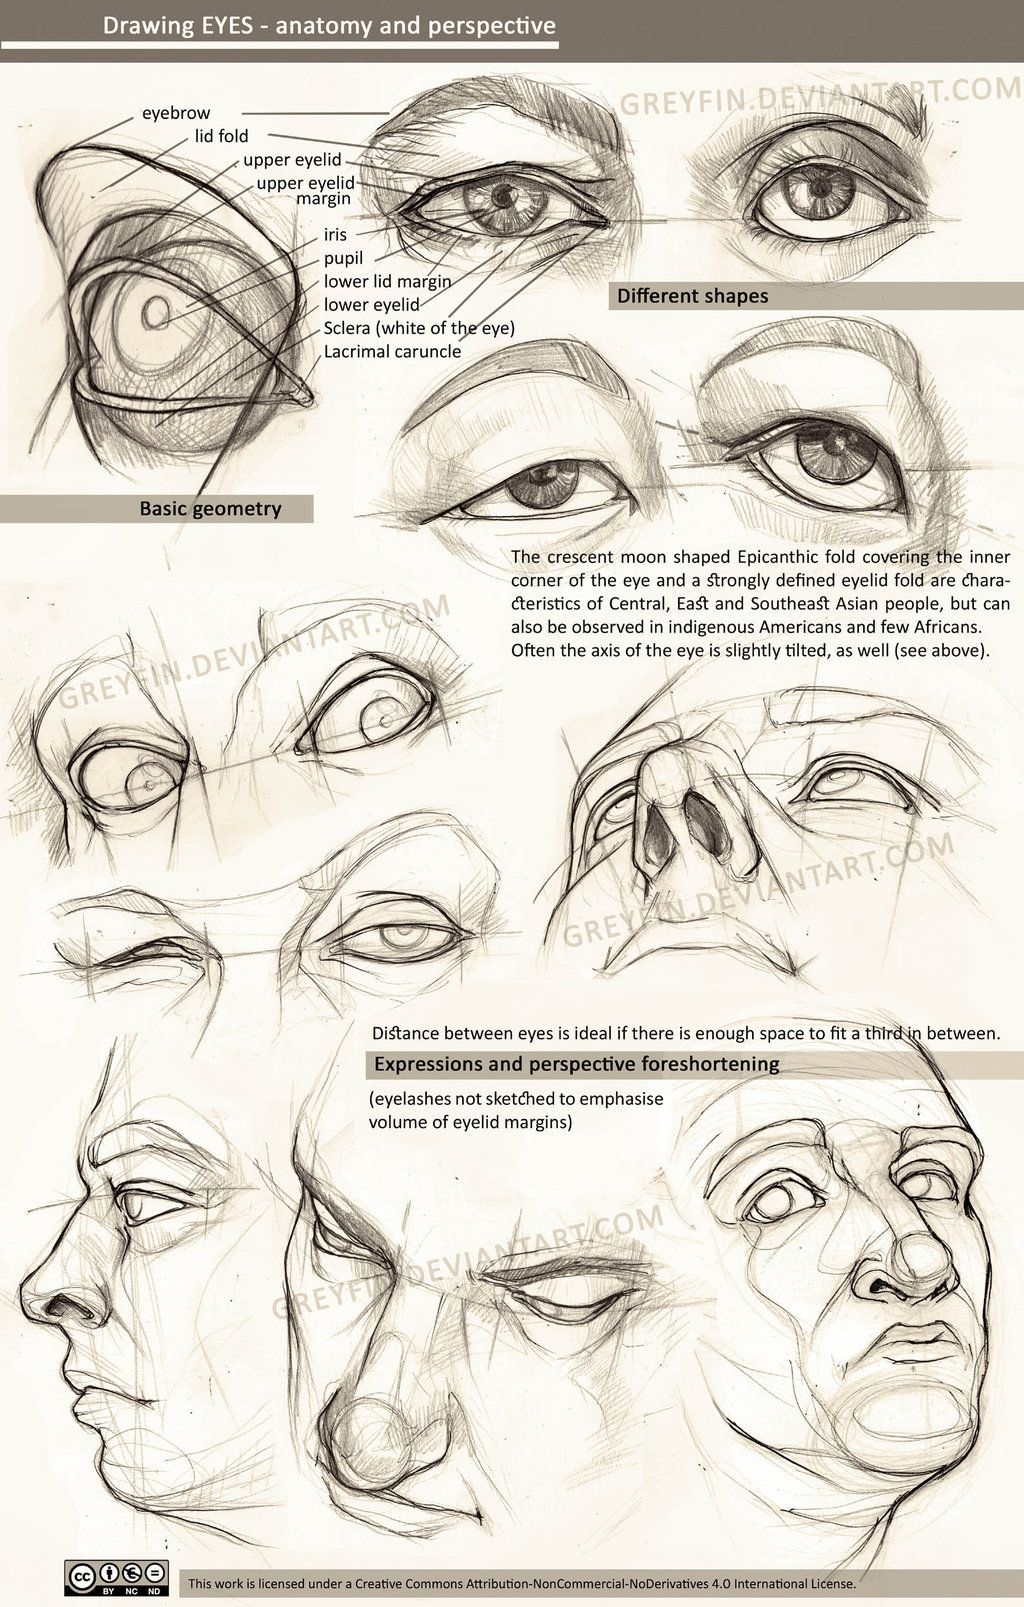 medium resolution of drawing eyes anatomy and perspective by greyfin